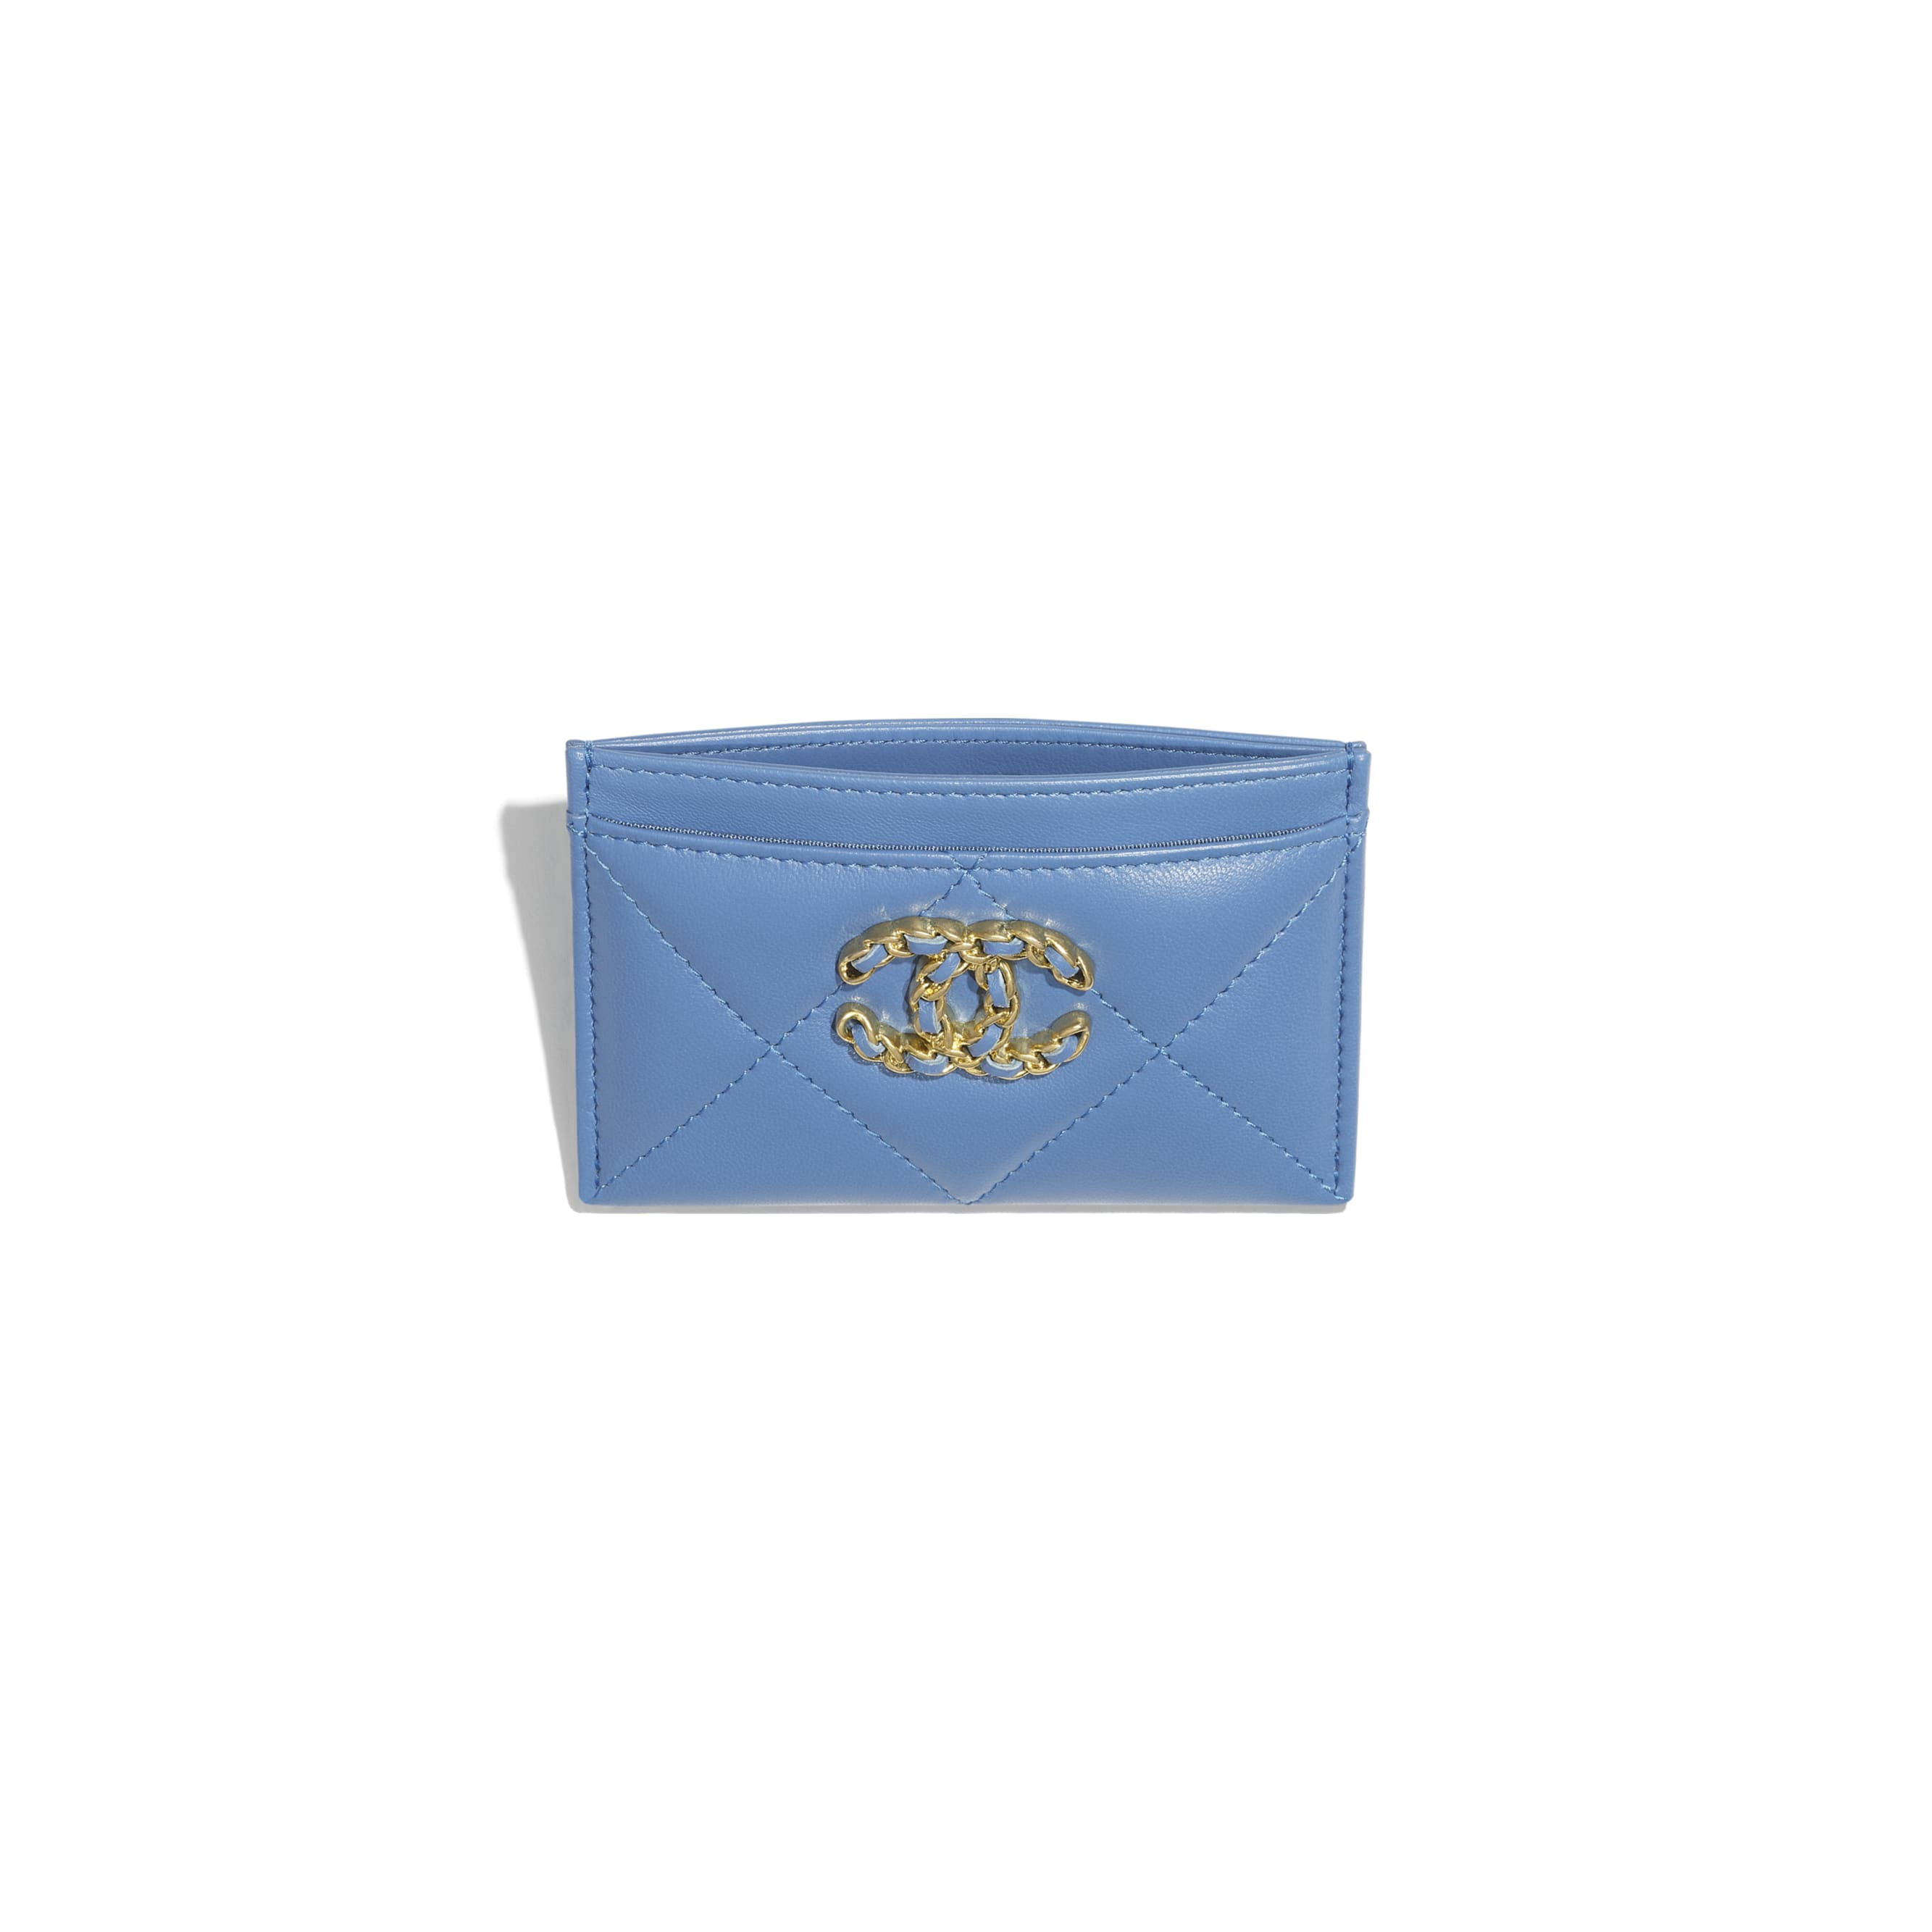 CHANEL 19 Card Holder - Blue - Lambskin, Gold-Tone, Silver-Tone & Ruthenium-Finish Metal - CHANEL - Other view - see standard sized version